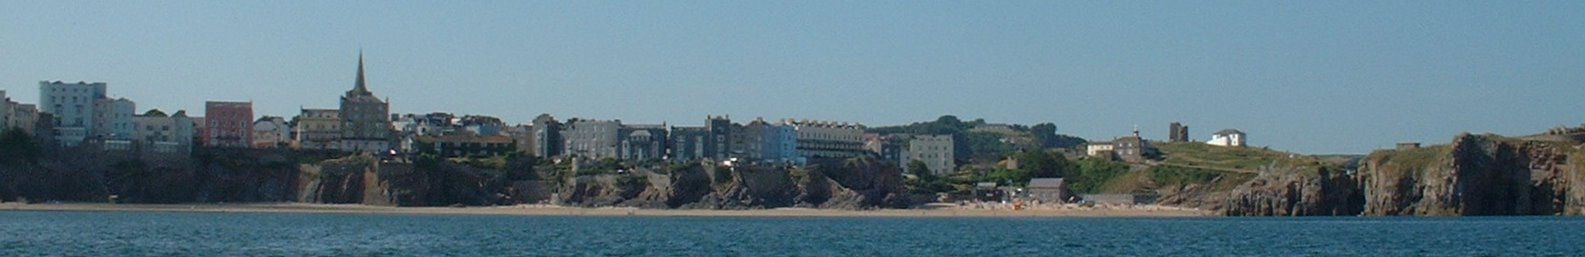 Tenby from the sea